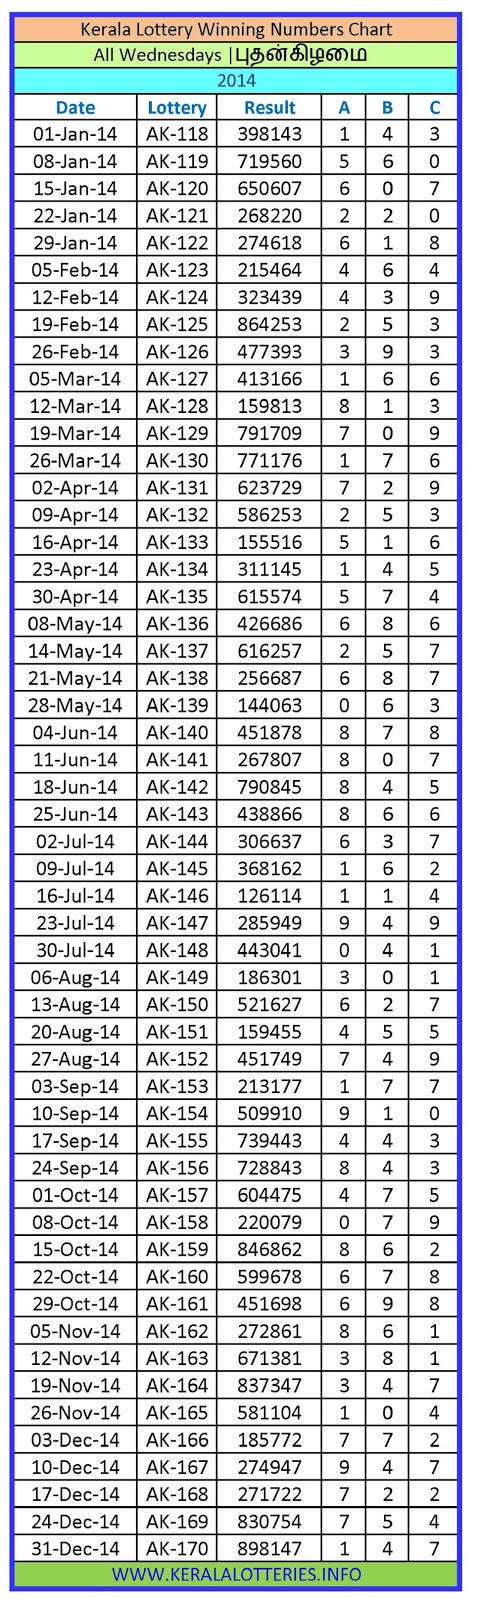 Kerala Lottery Winning Number Chart Wednesday -2014